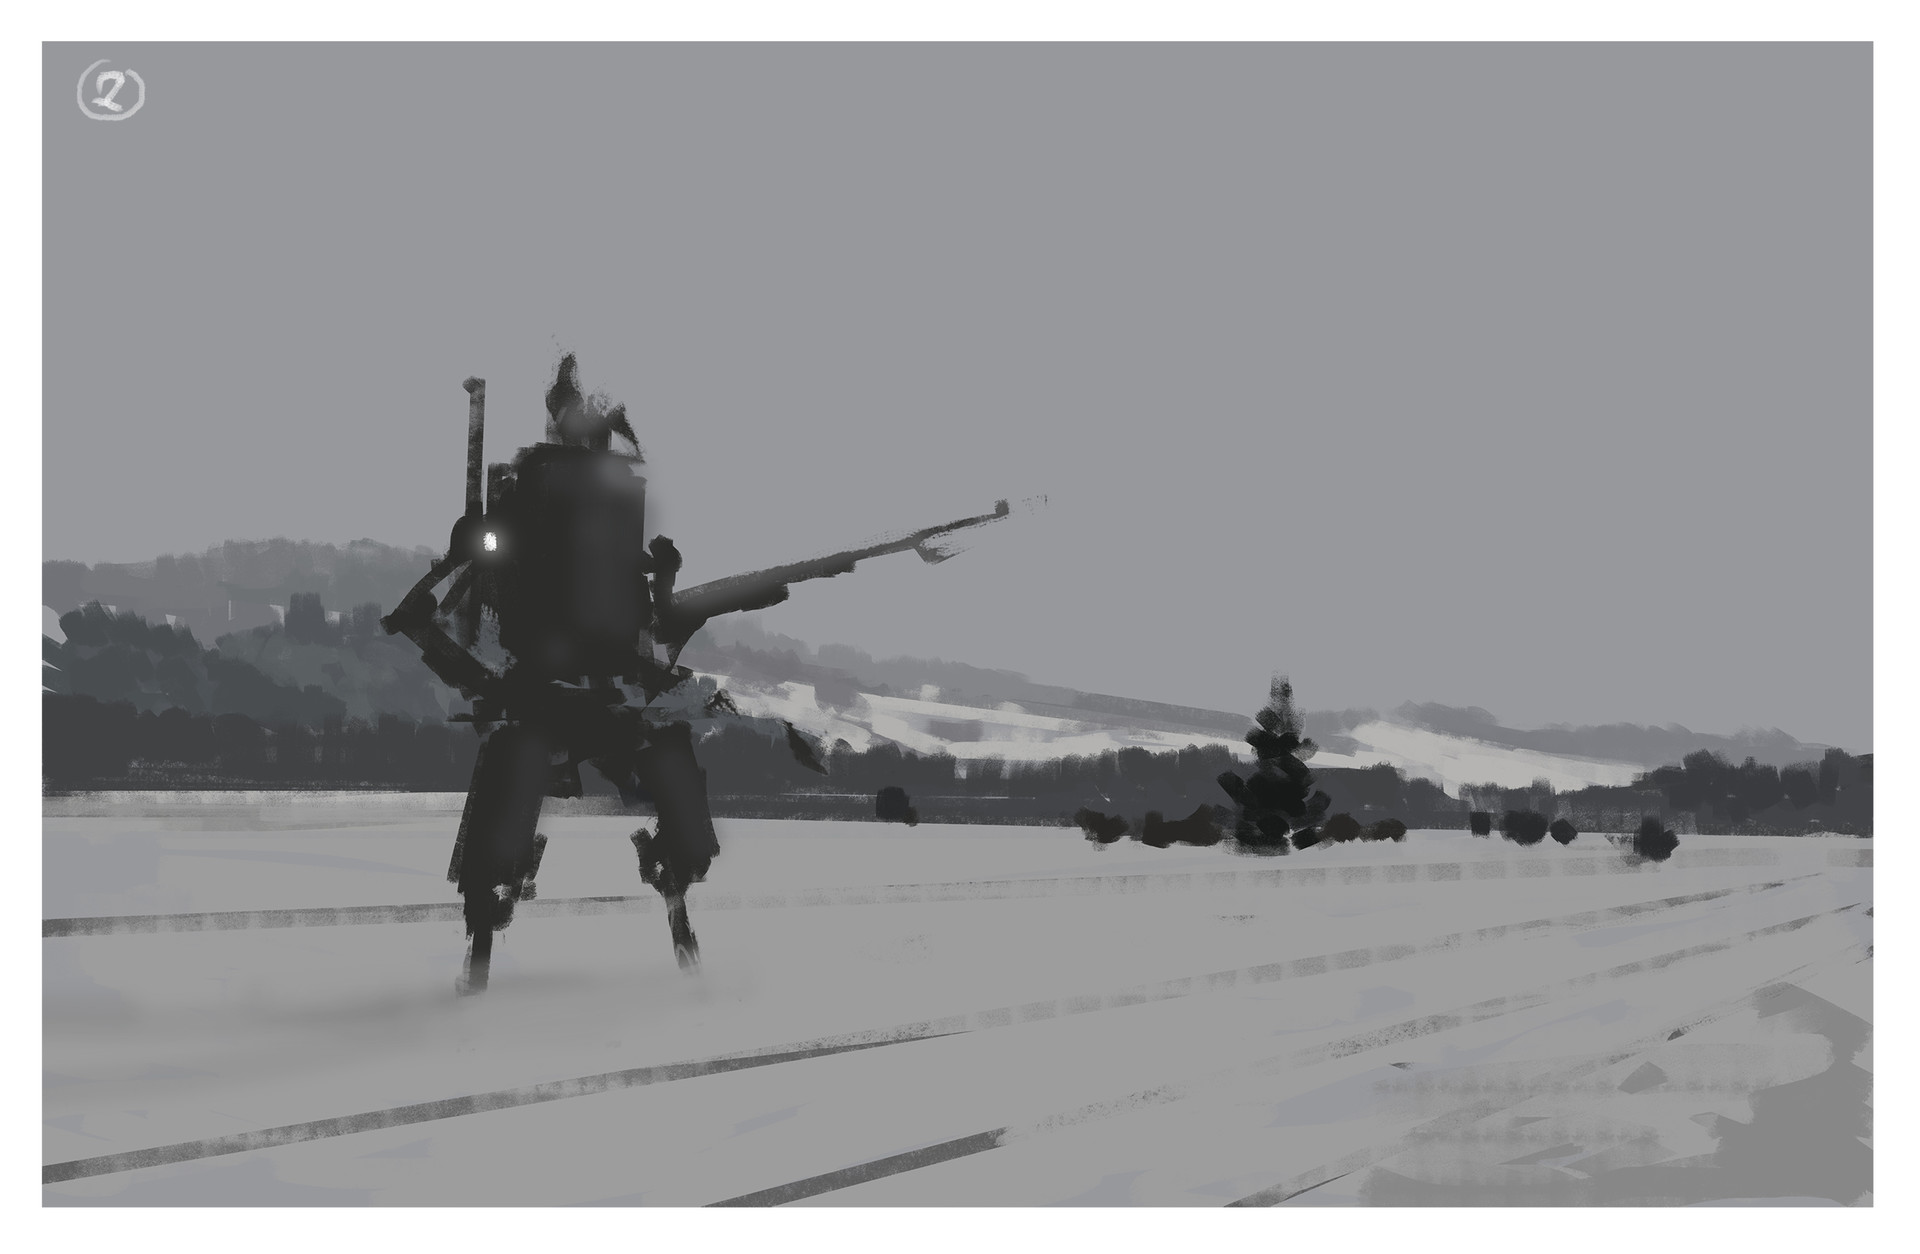 Jakub rozalski work proces watch02